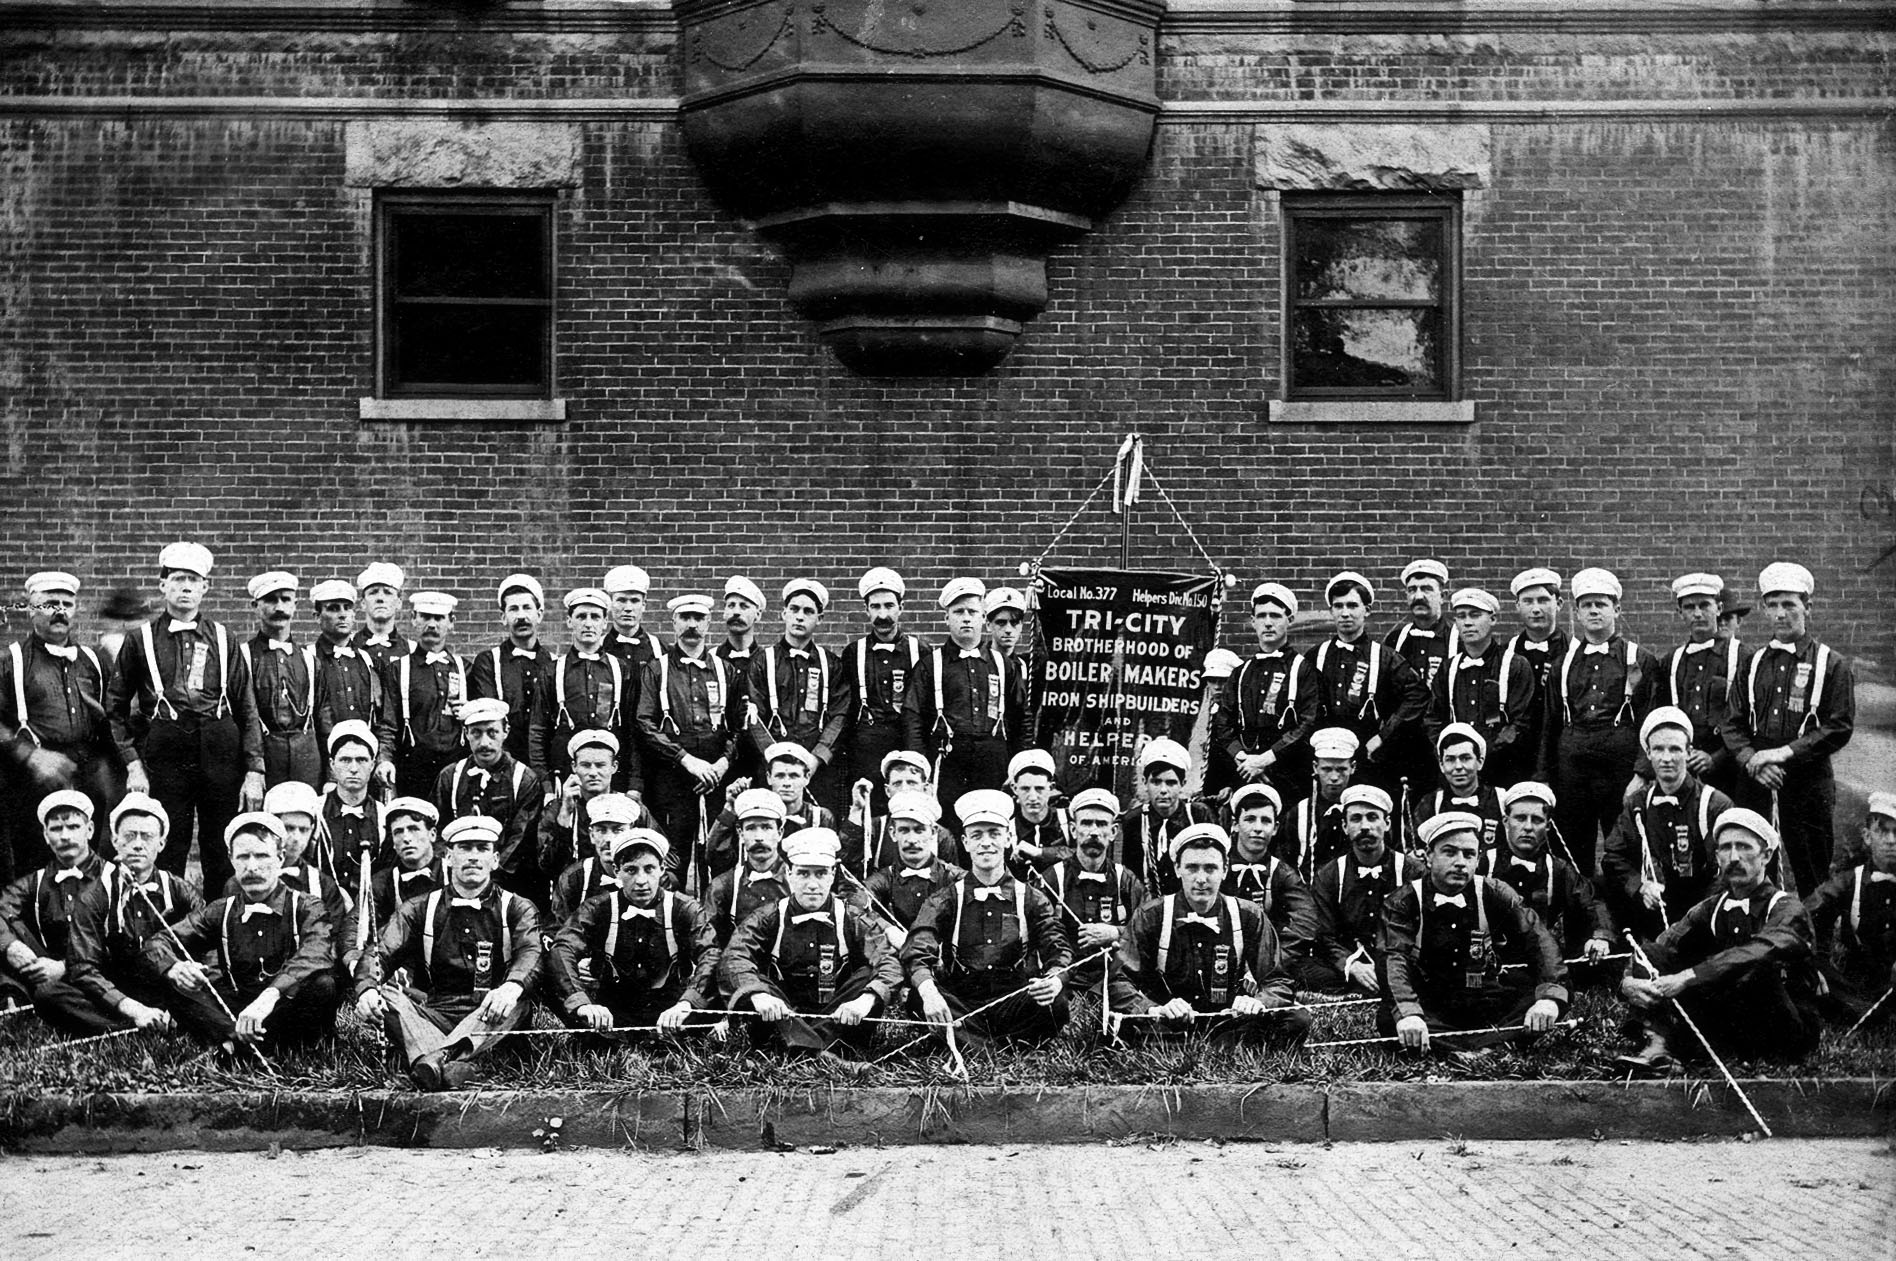 Boilermakers Local 377 on Labor Day